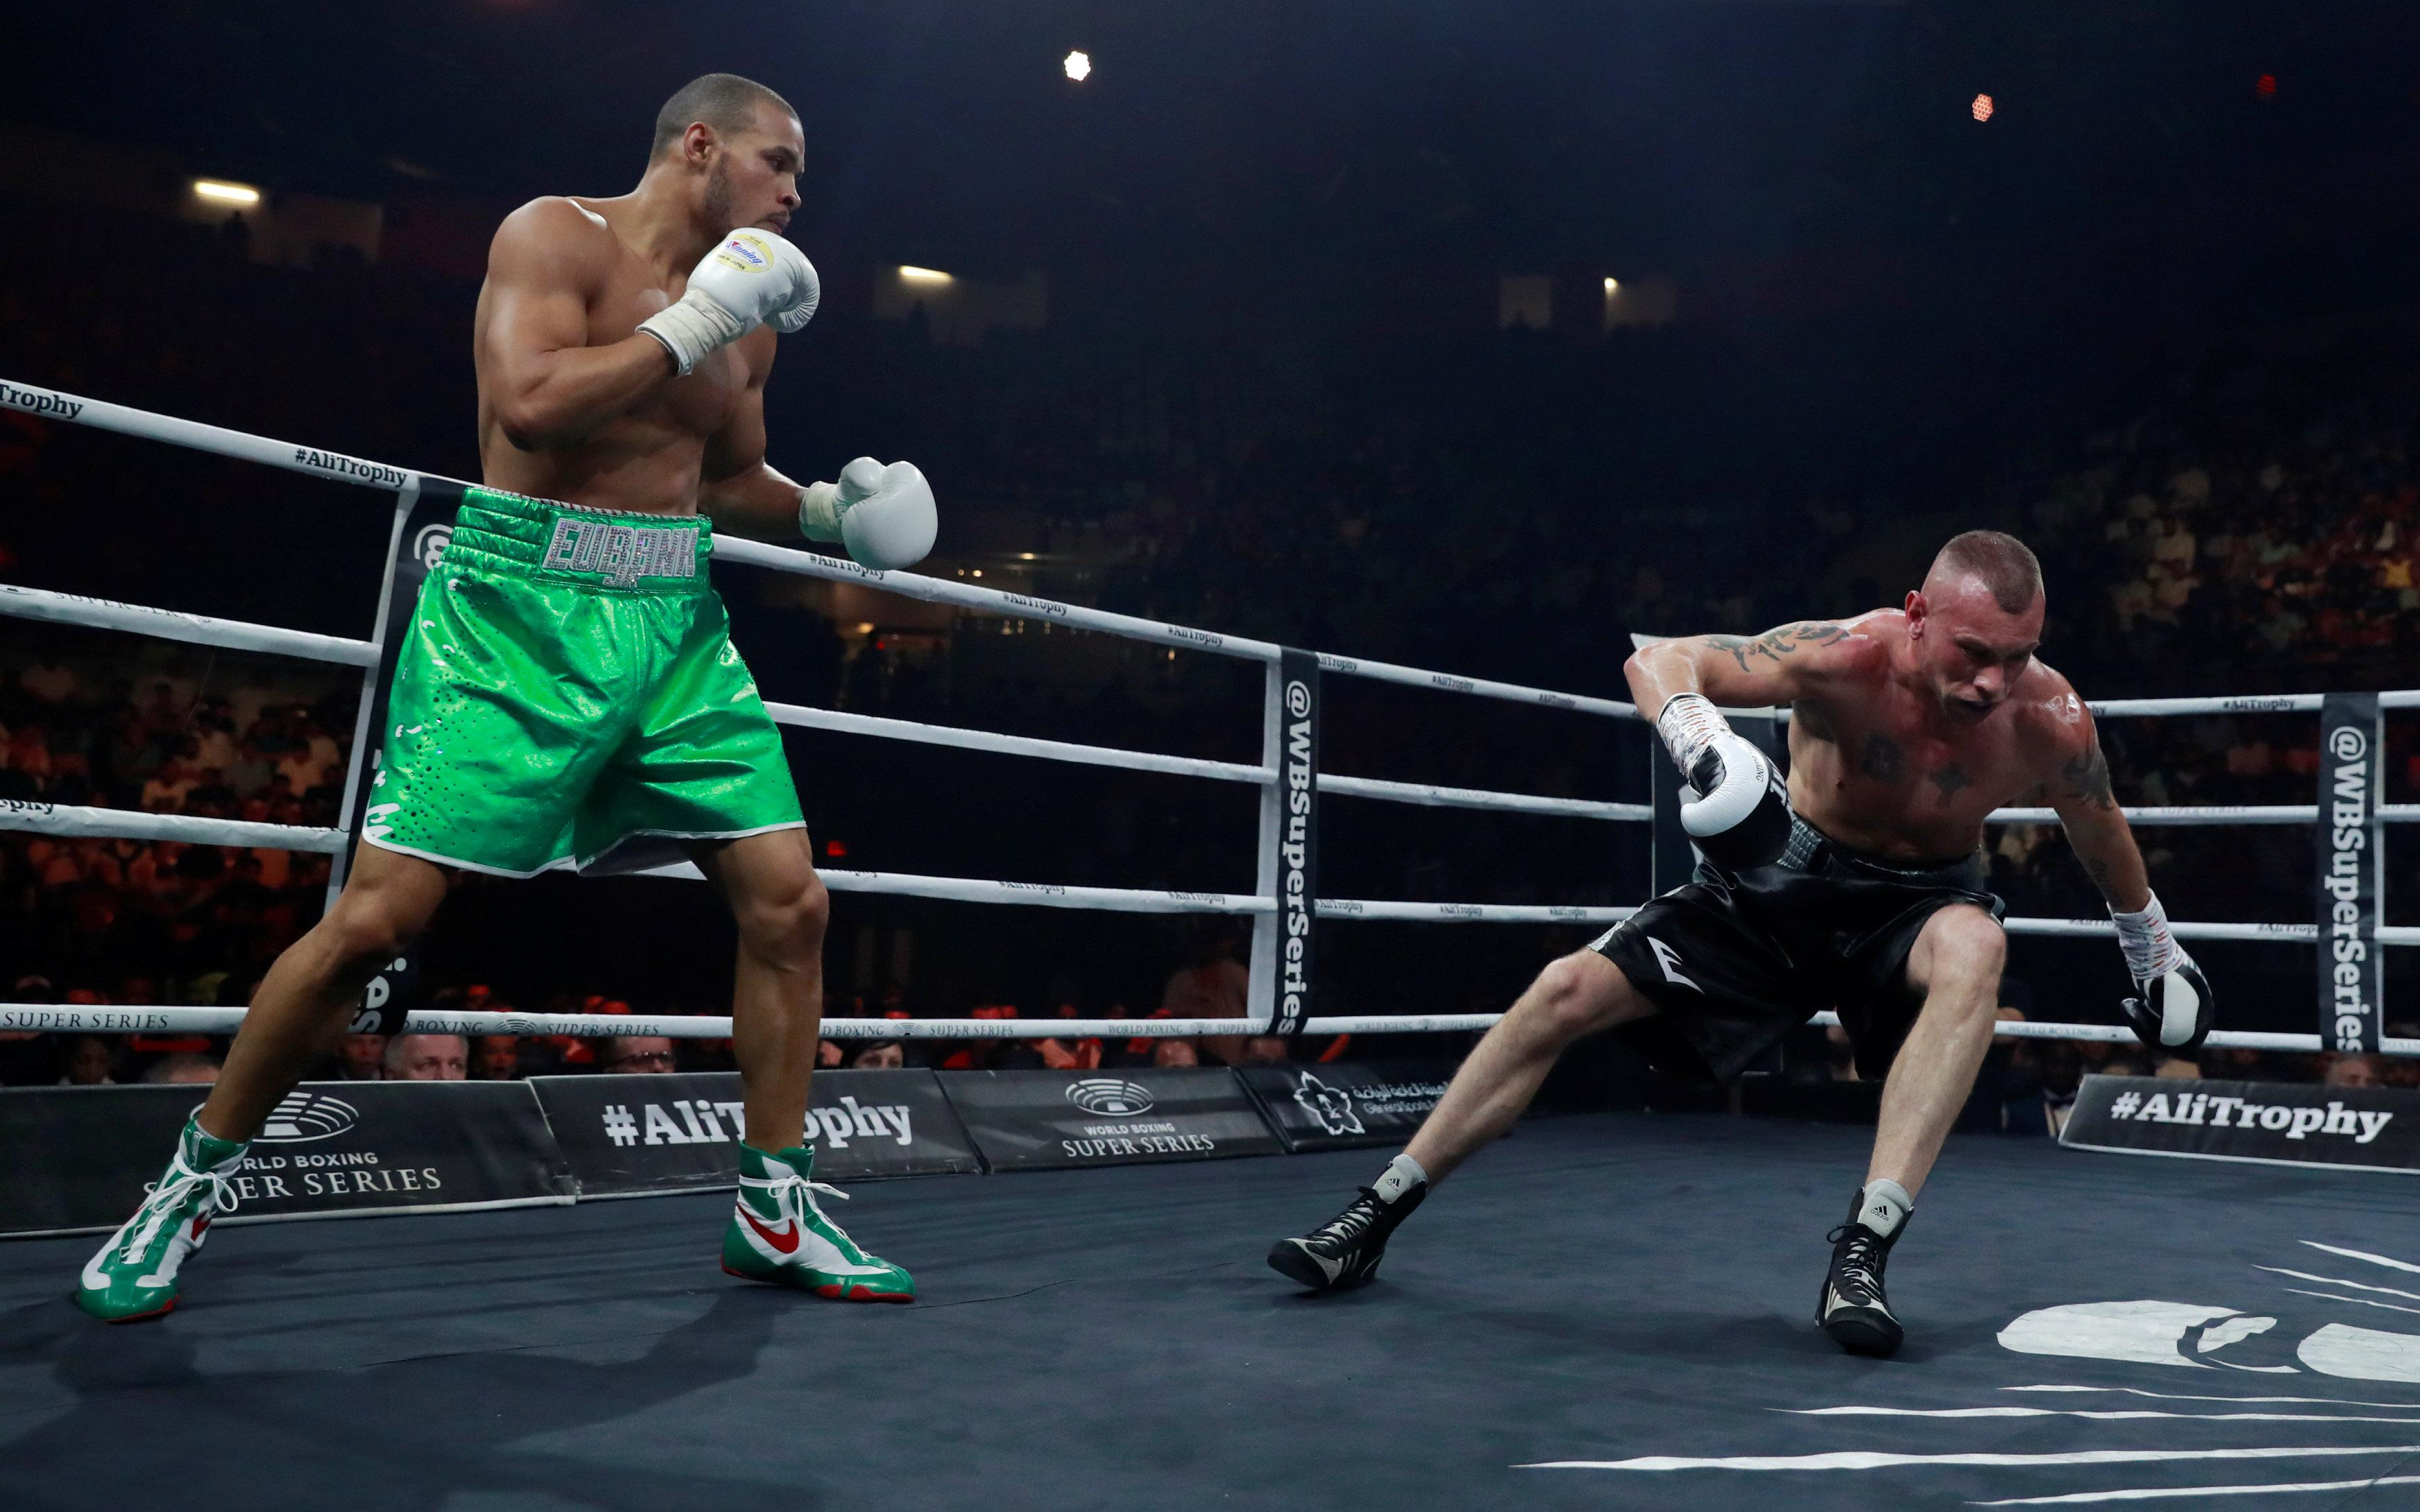 McDonagh was floored by Eubank Jr with a left hook in the first round